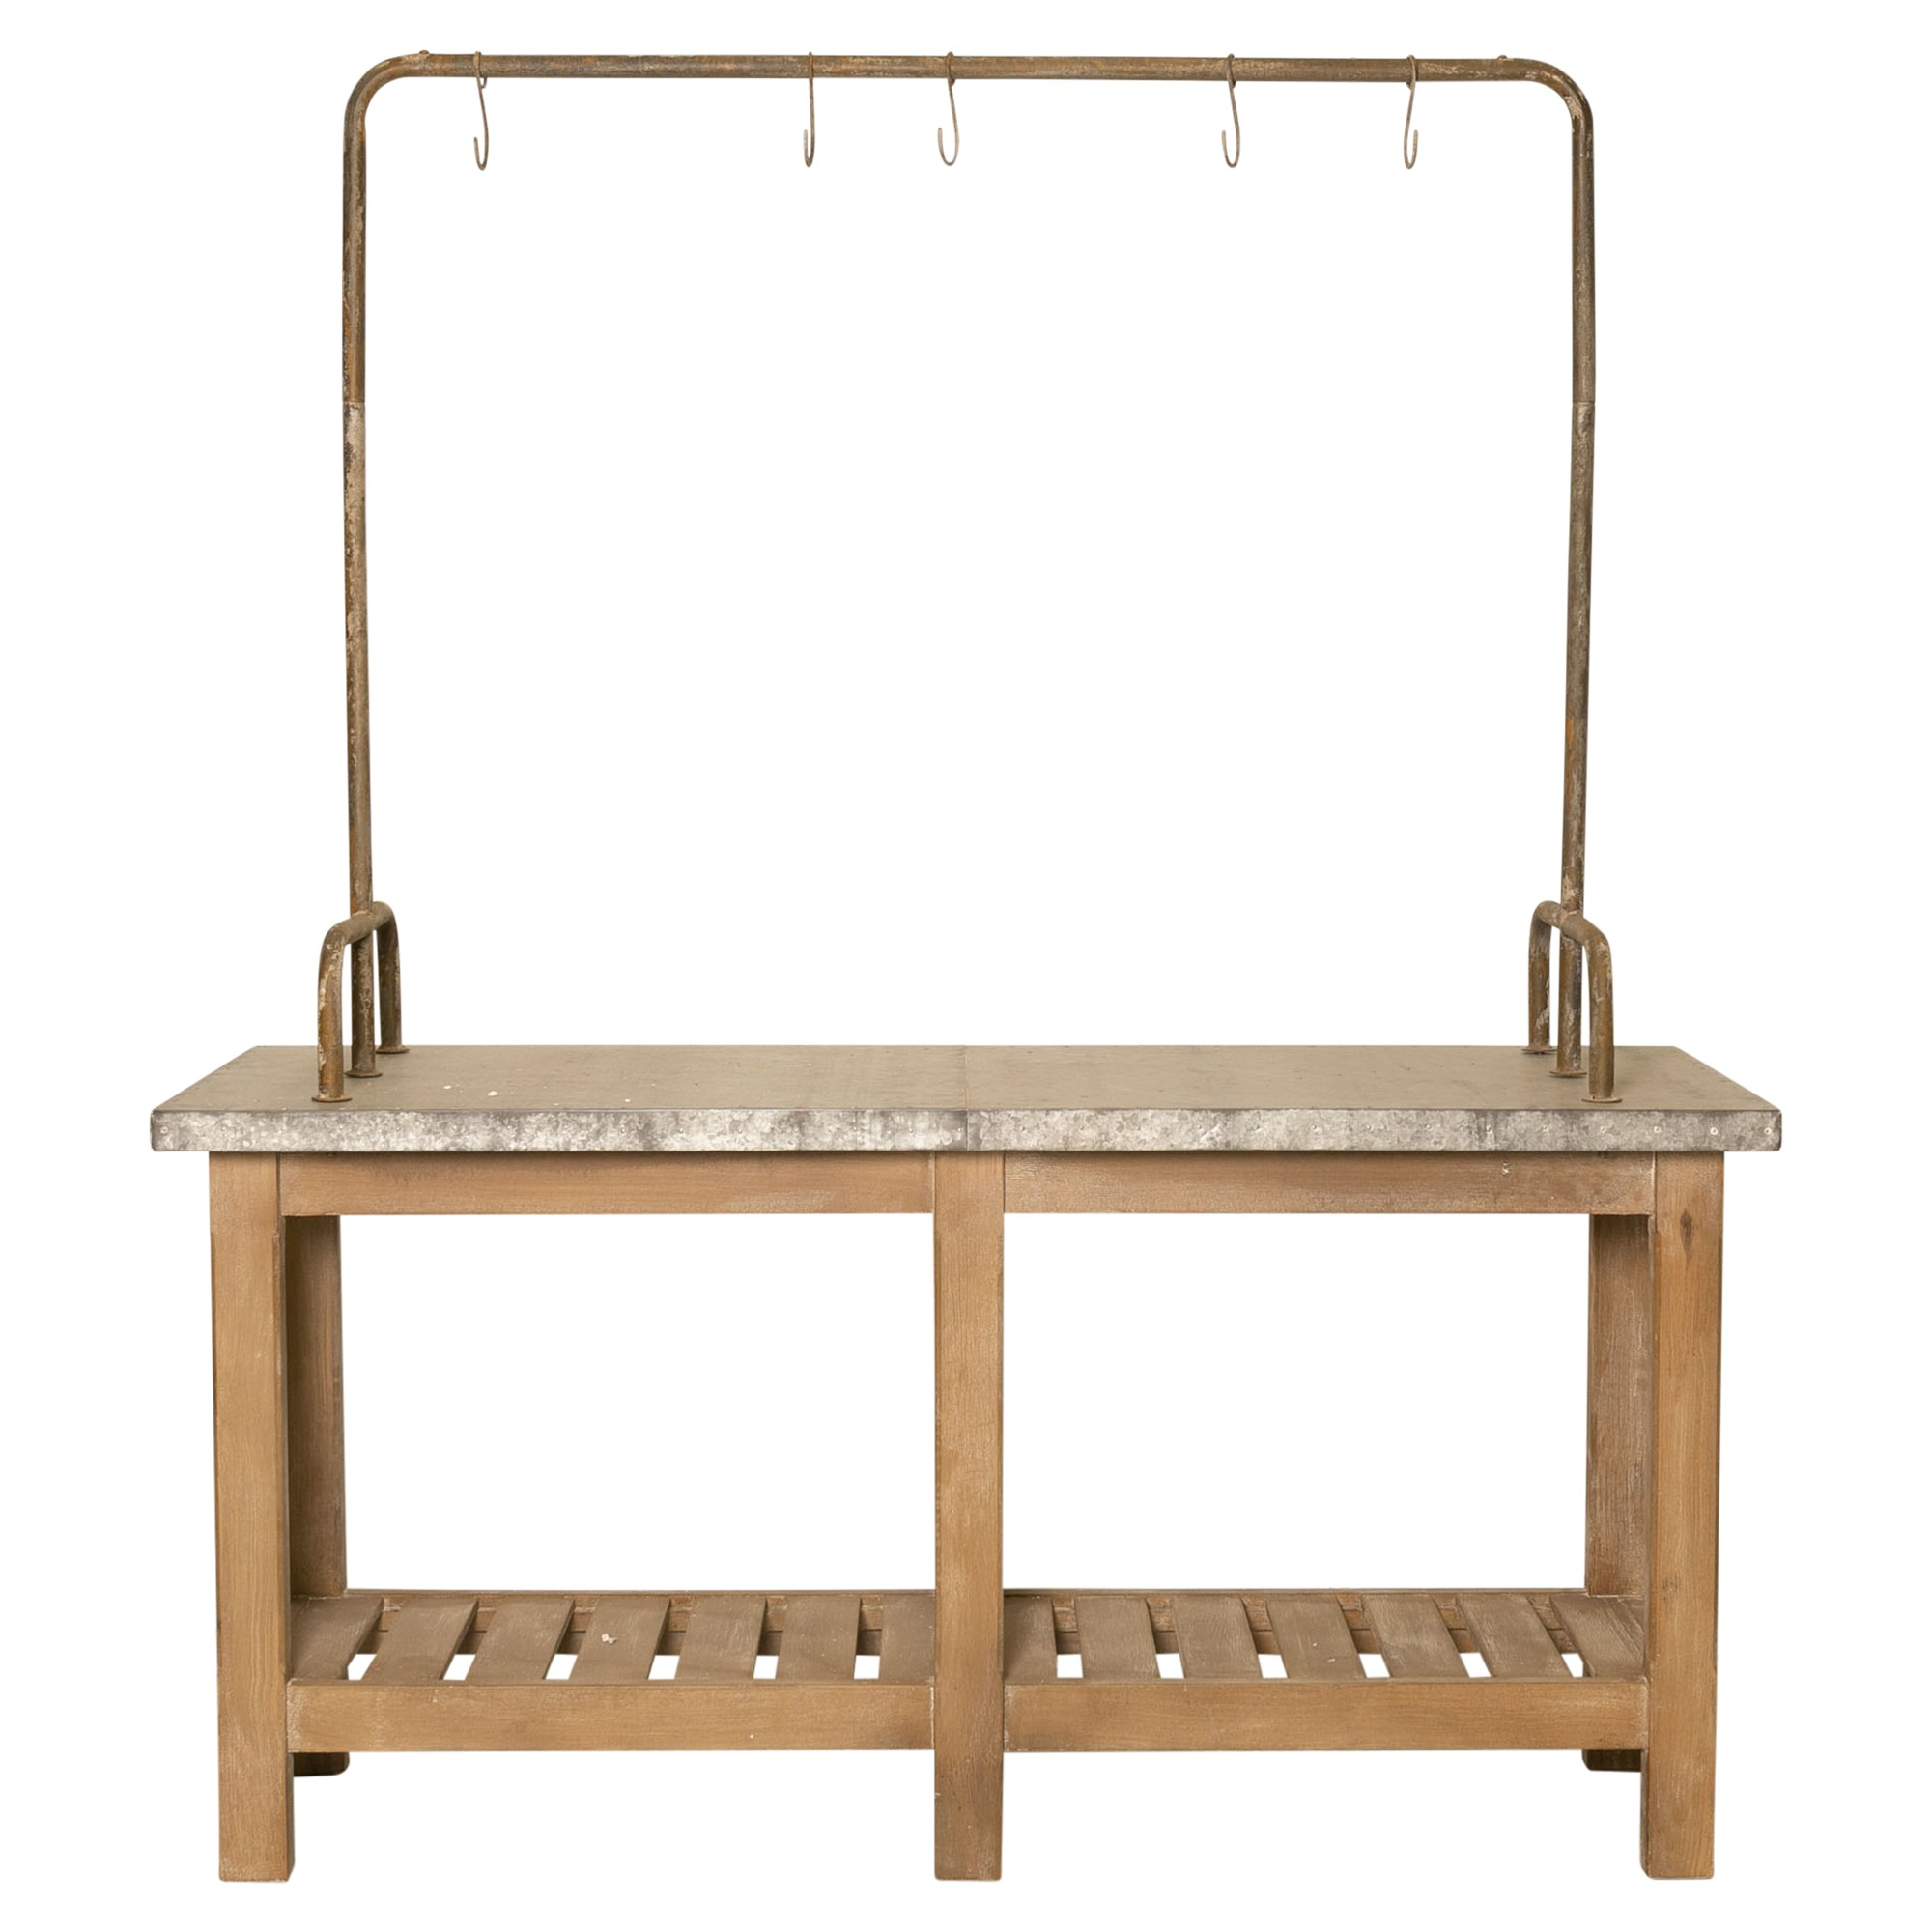 Anais Wood Butcher Table with Hanging Rack